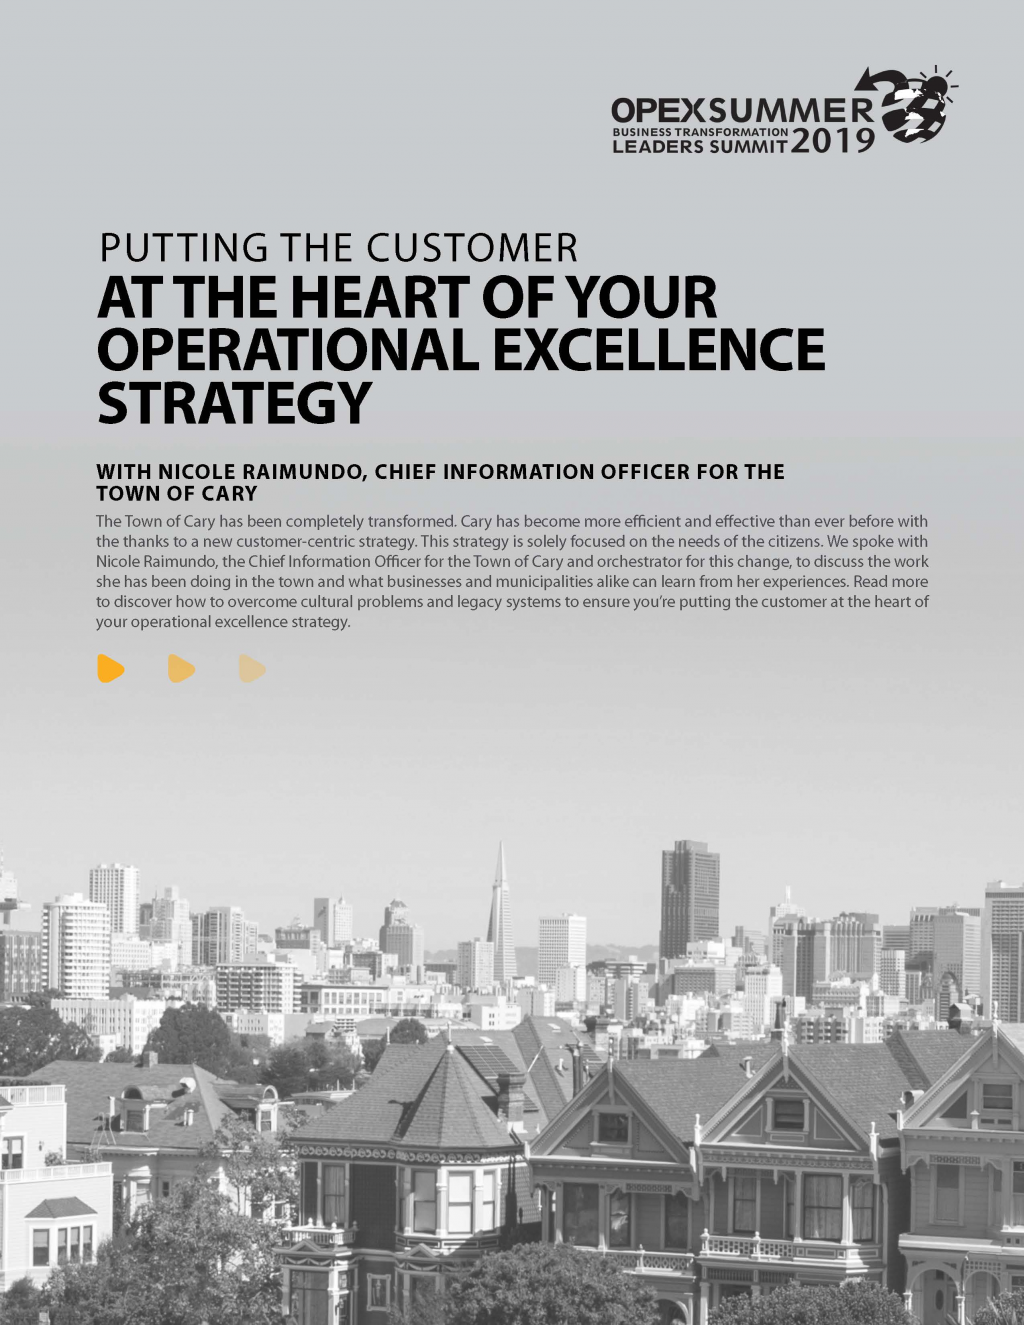 Putting the customer at the heart of your OPEX journey - an interview with Nicole Raimundo, CIO